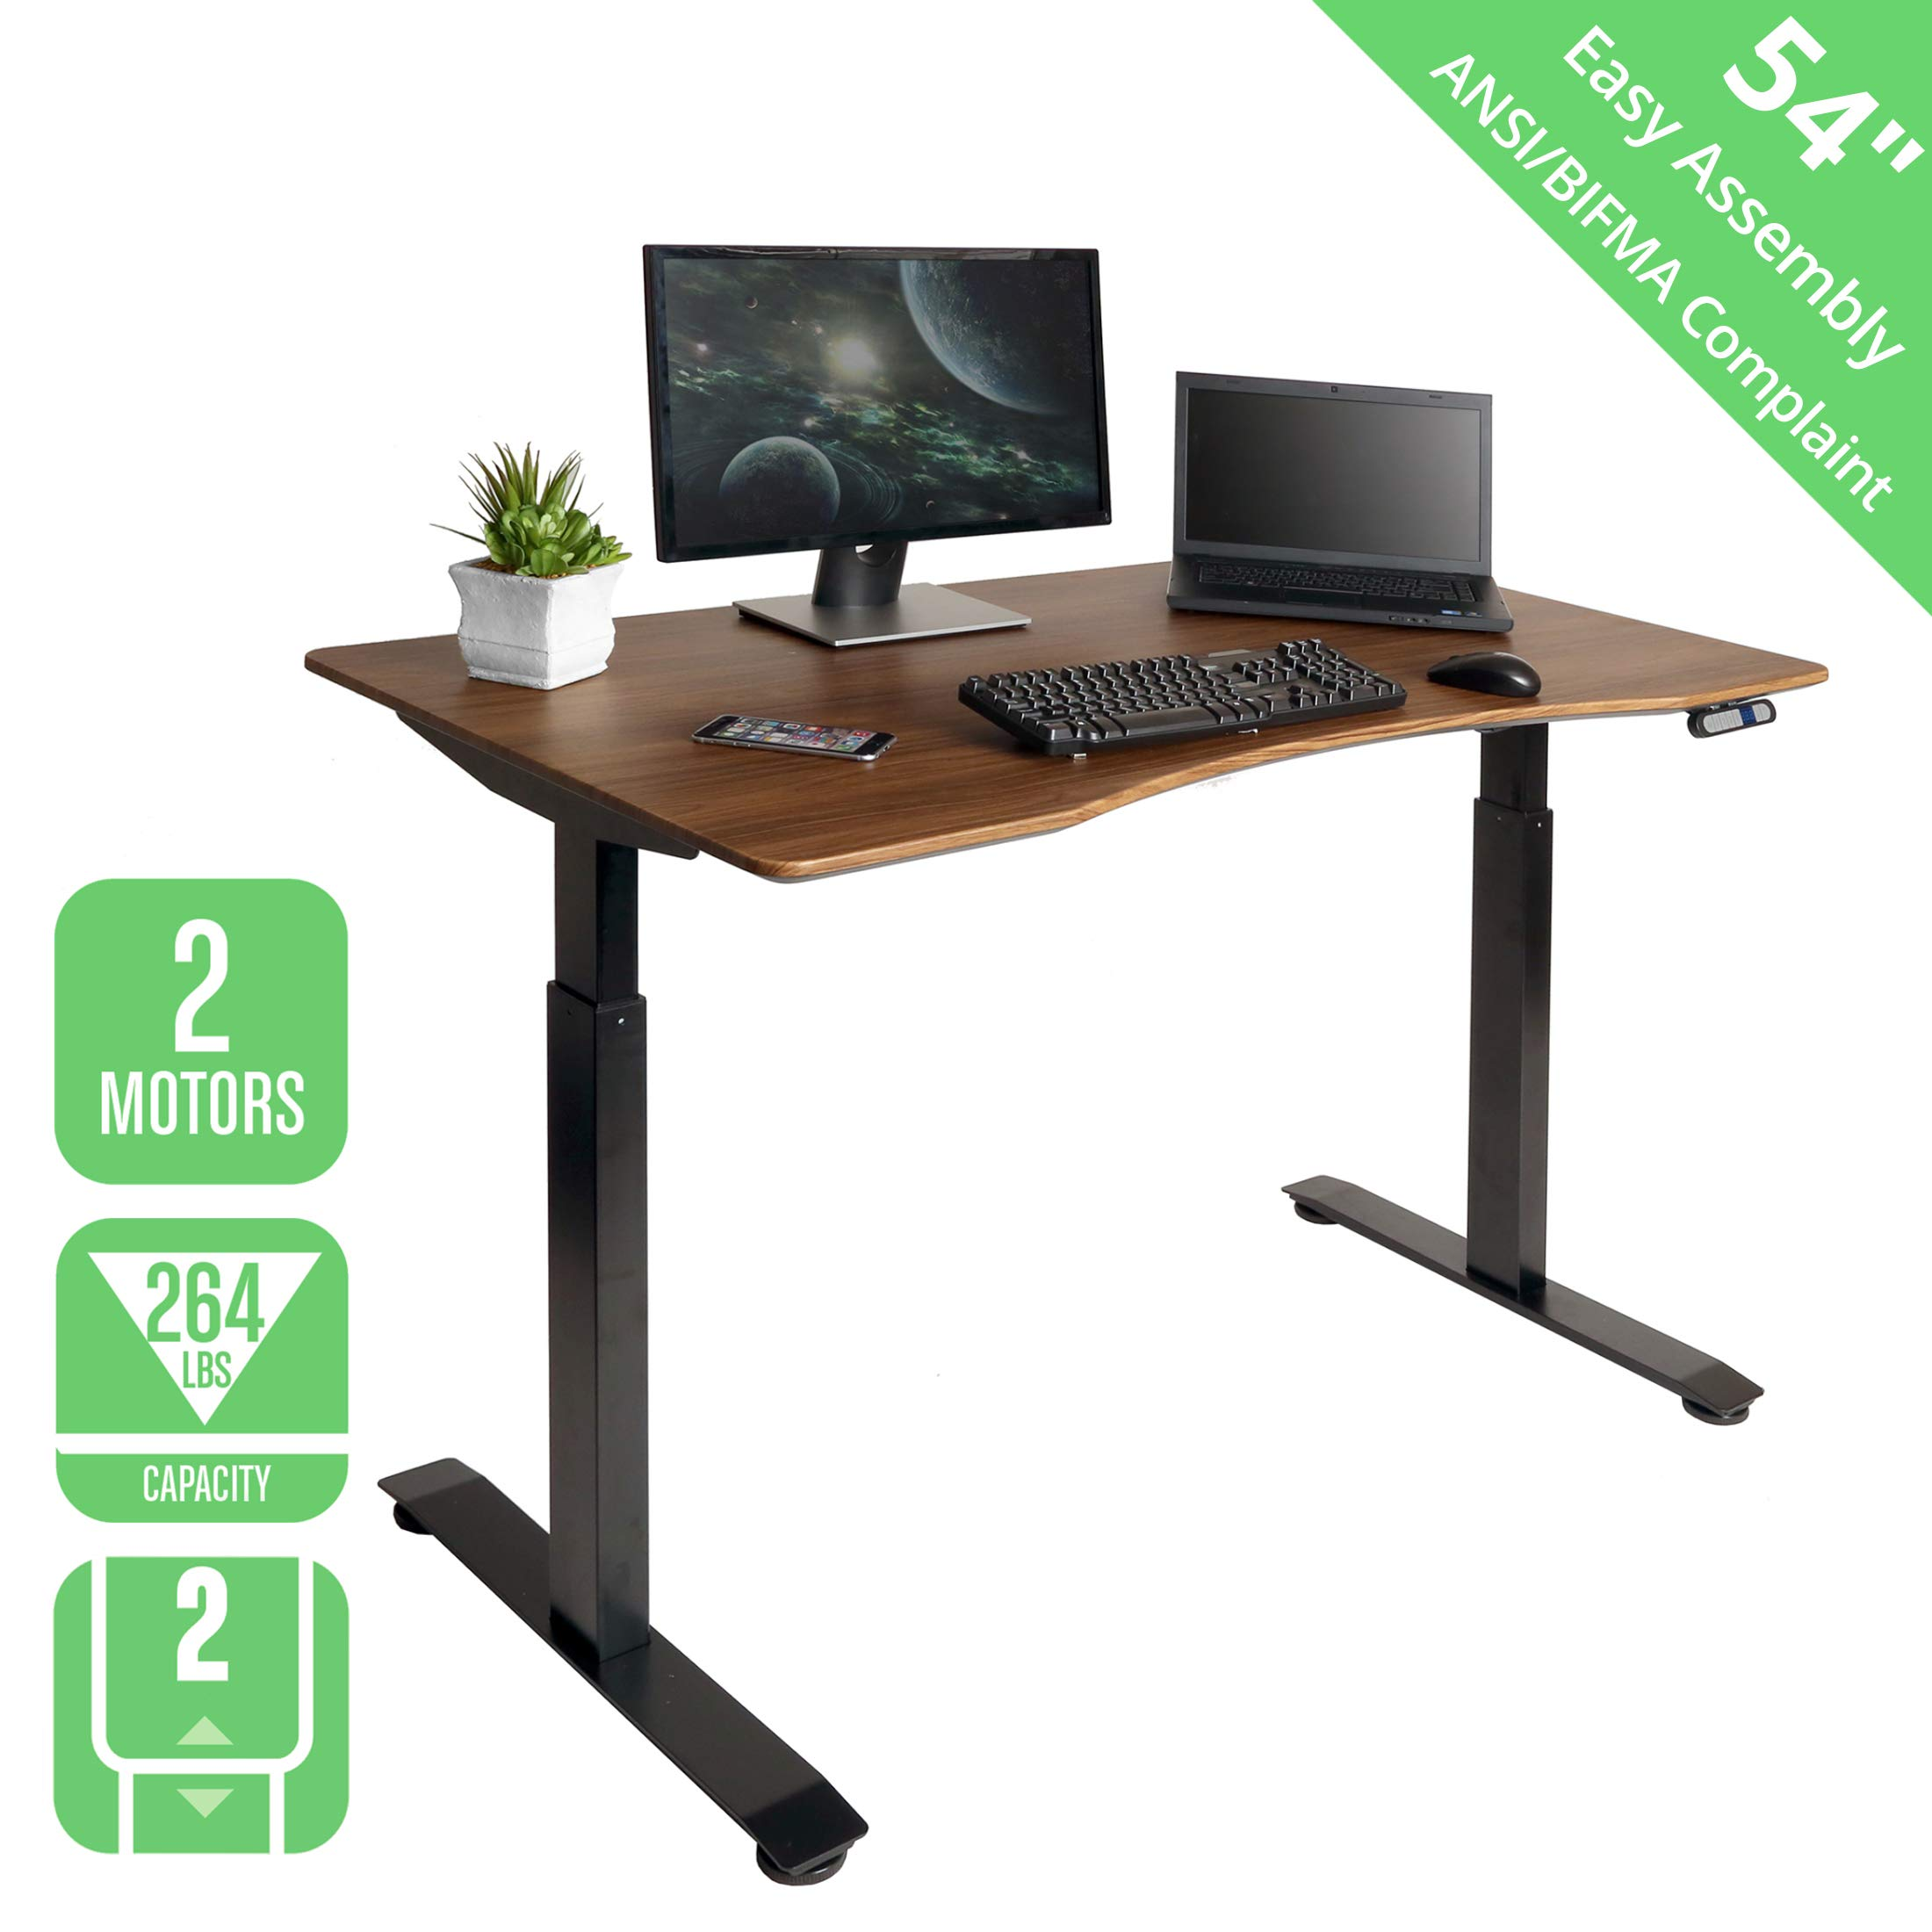 Seville Classics OFFK65824 Airlift S2 Electric Standing Desk with 54'' Top, Dual Motors, 4 Memory Buttons, LED Height Display (Max. 48.4'' H) 2-Section Base, Black/Walnut, Black/Walnut, Black/Walnut by Seville Classics